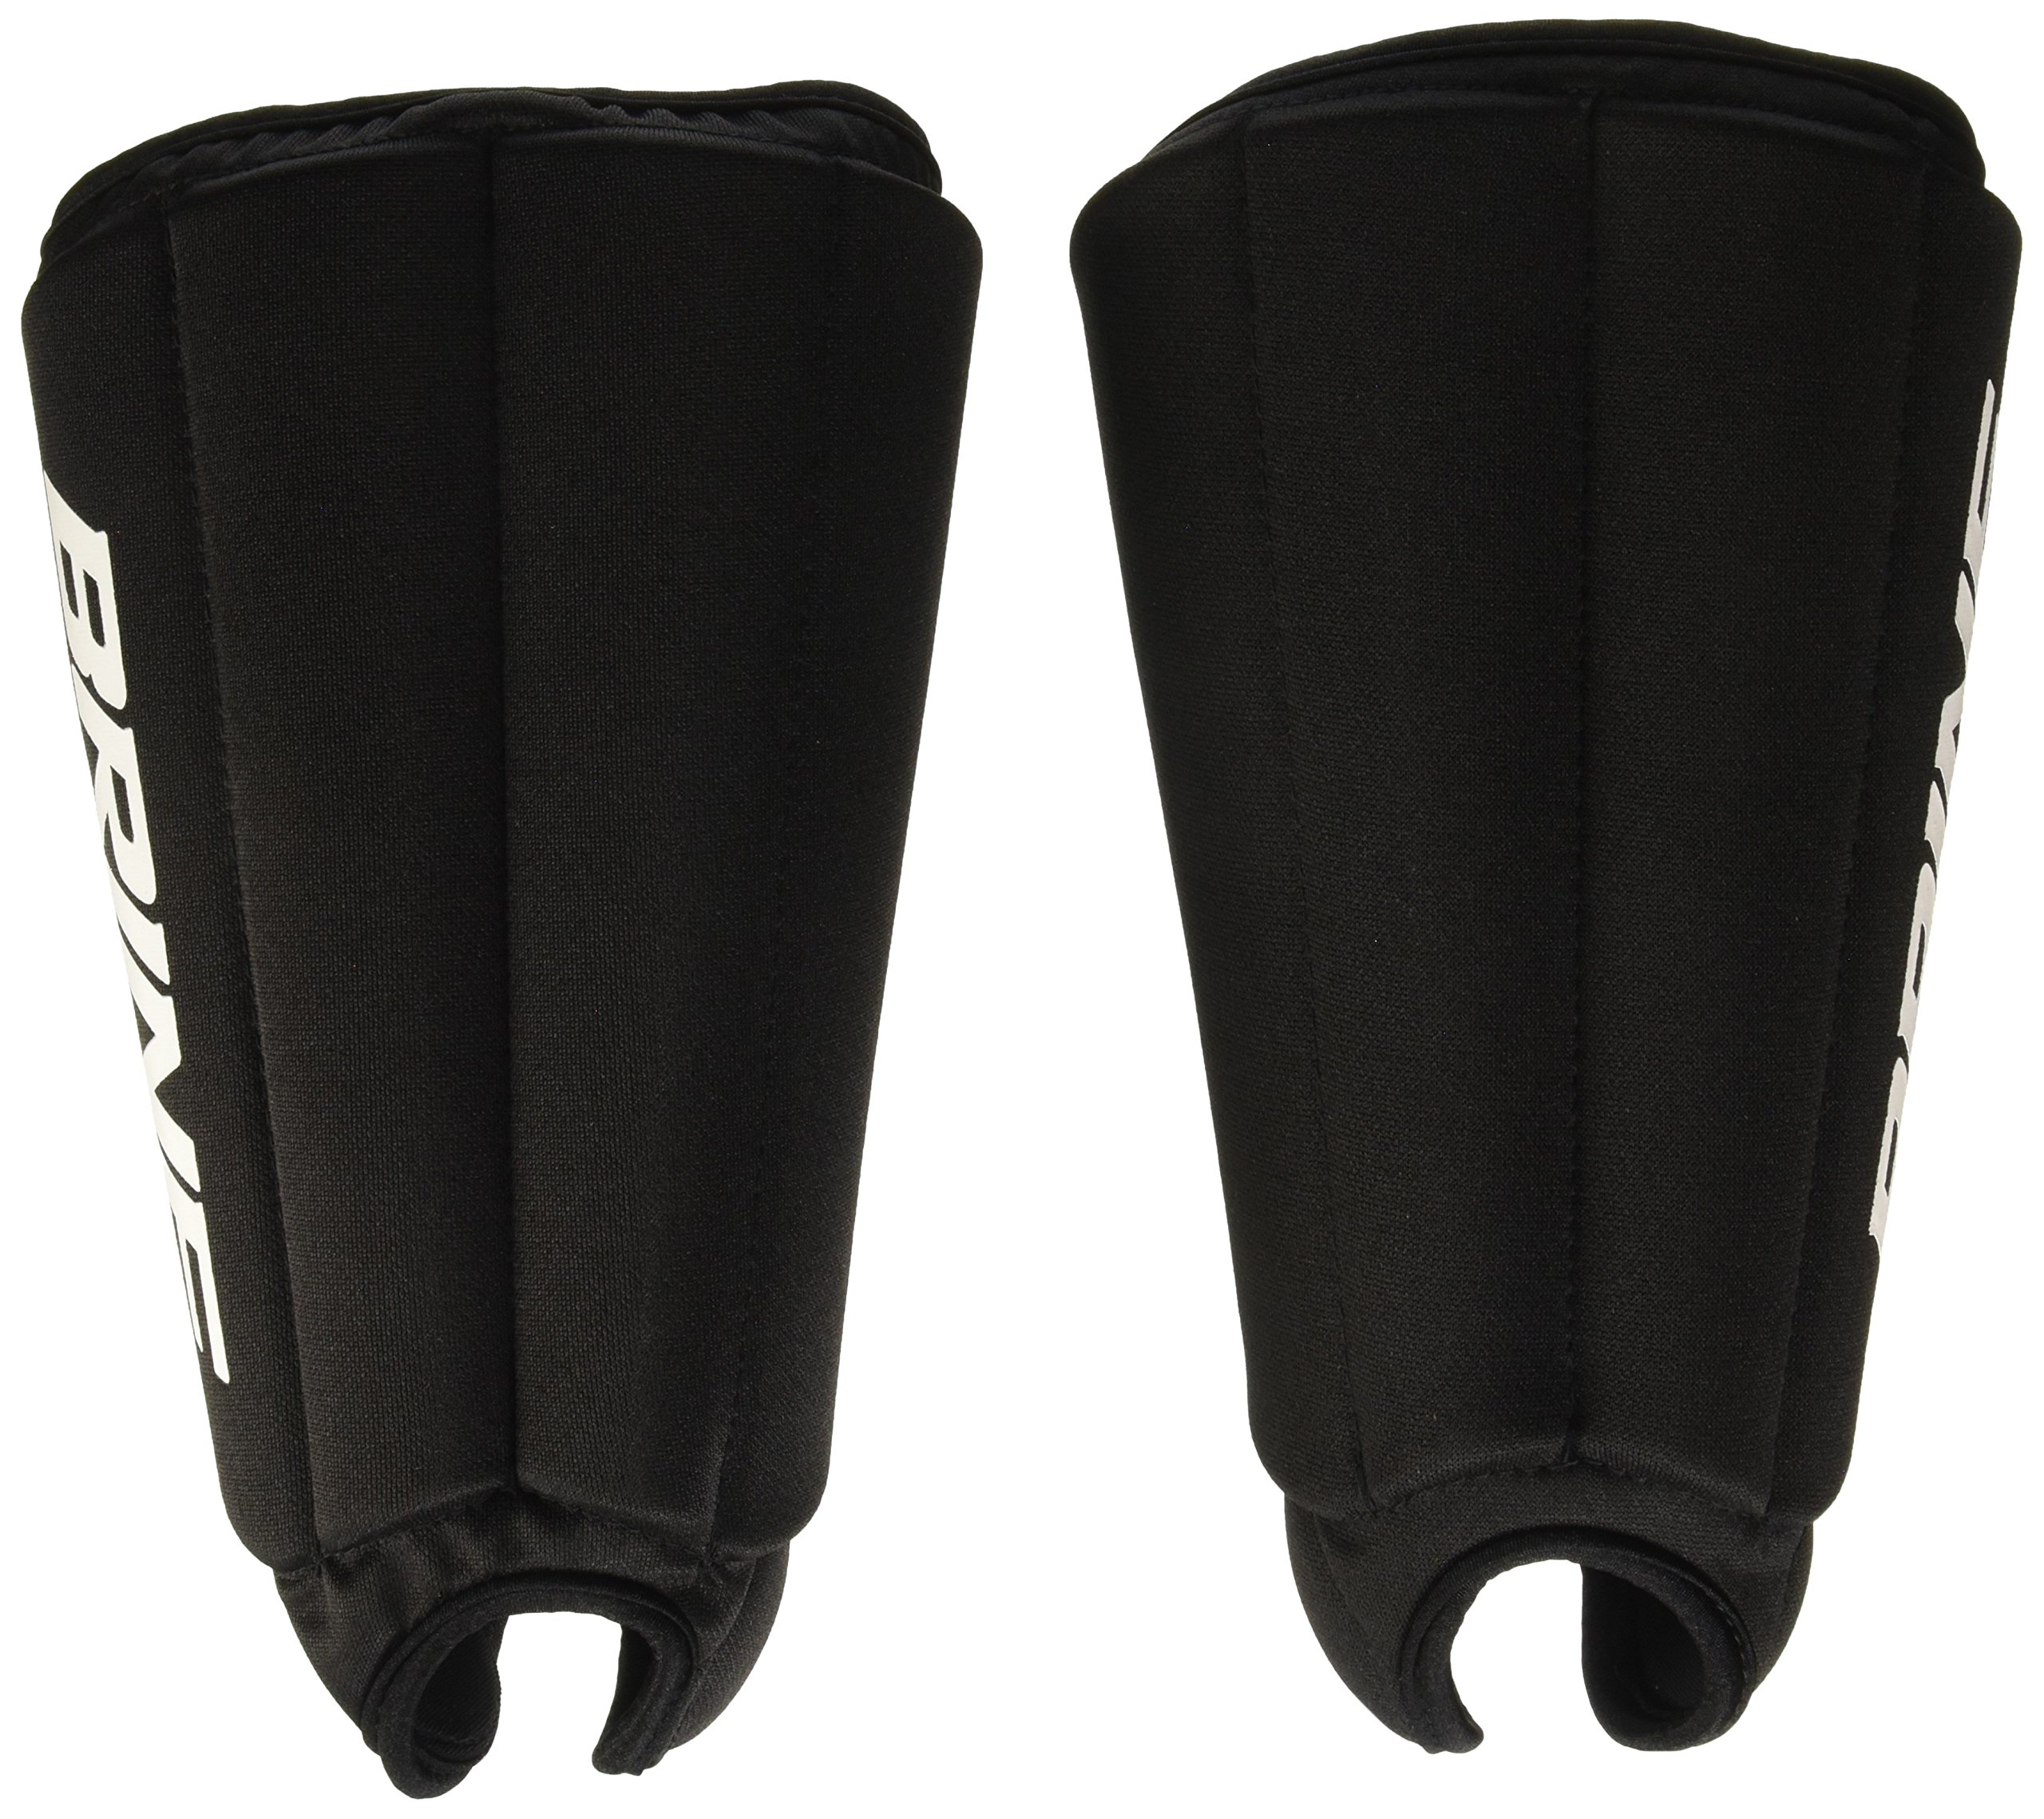 Brine Lacrosse Goalie Shin Guard (One Size, Black)